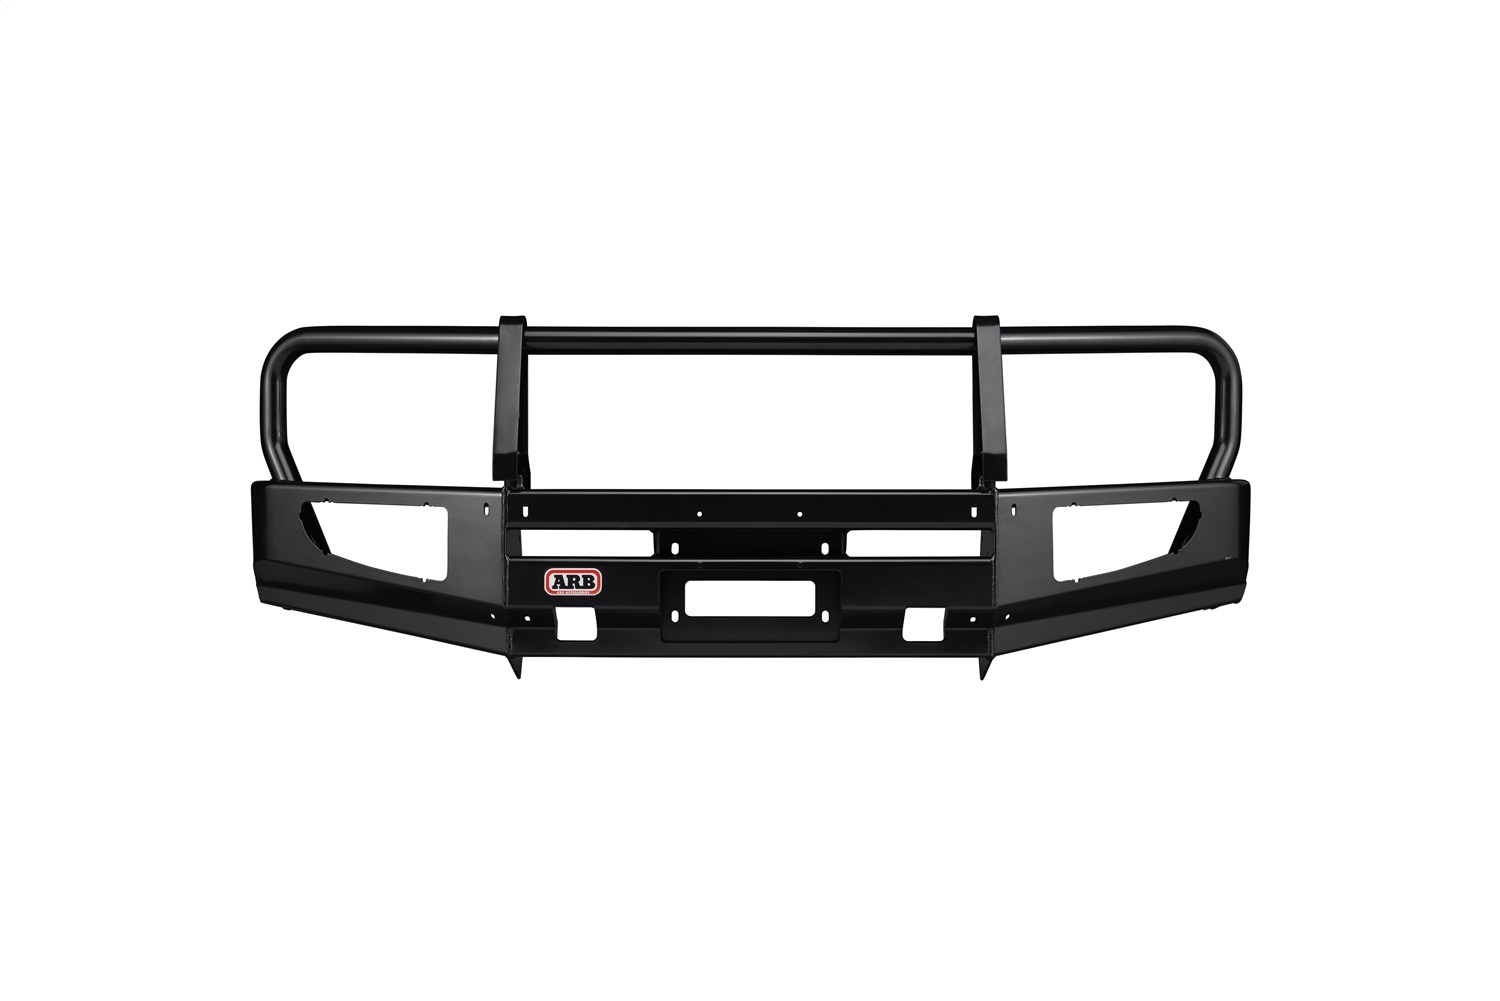 Arb 4x4 Accessories Front Deluxe Bull Bar Winch